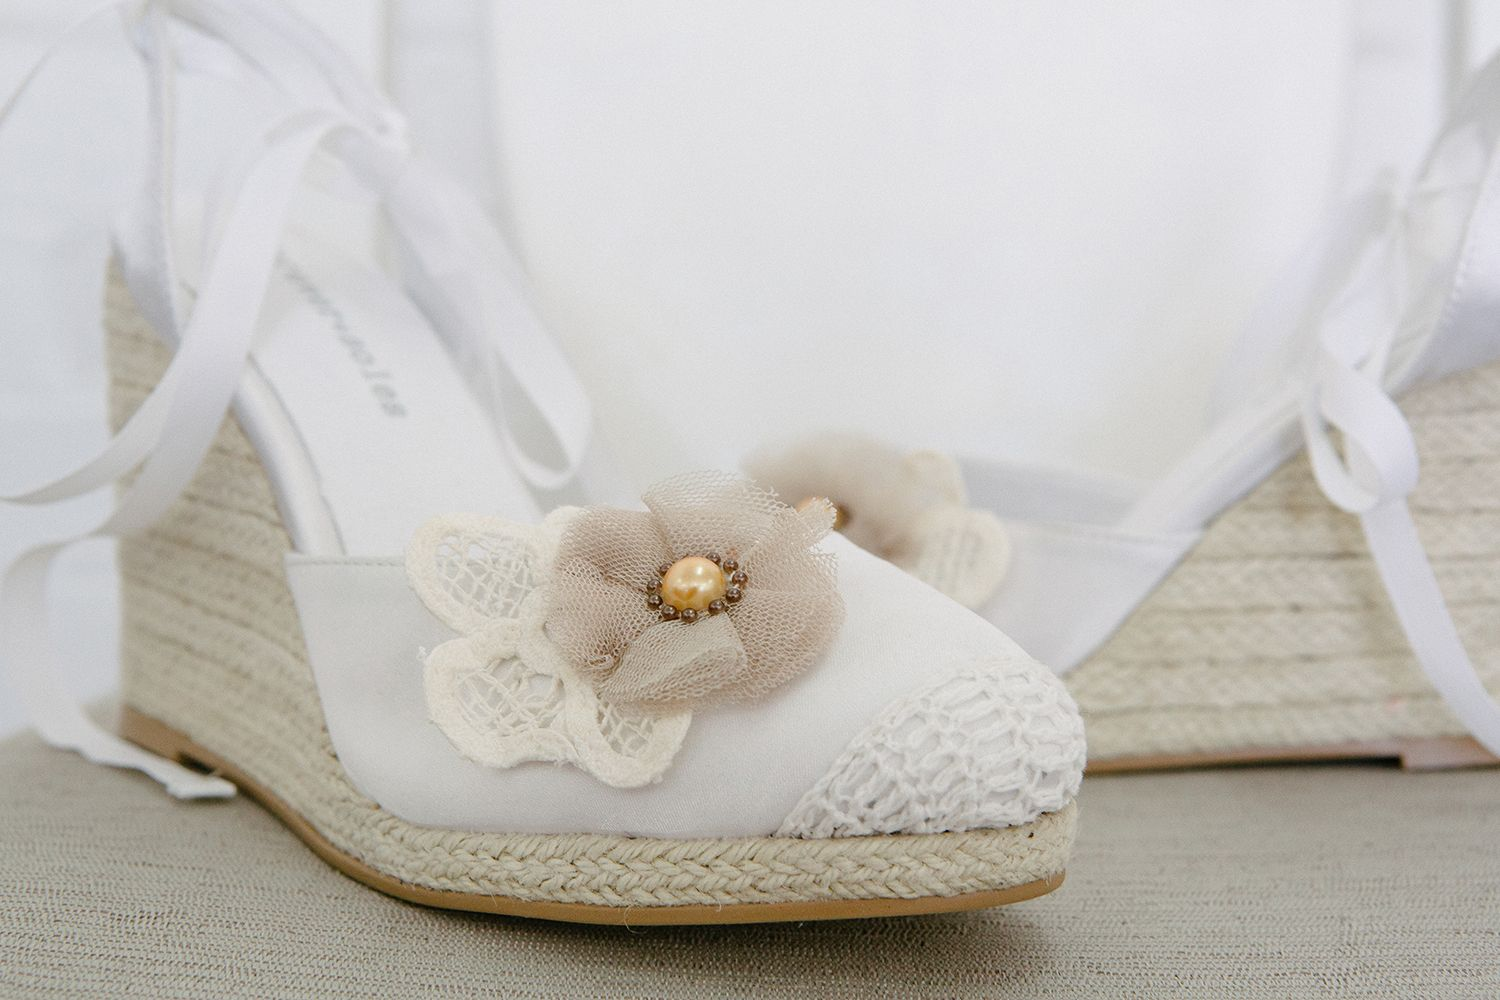 52ac78b2cf54 Vintage wedding shoes with flowers added to our espadrille wedges. Perfect comfortable  shoes for your outdoor wedding. Available now  www.foreversoles.com